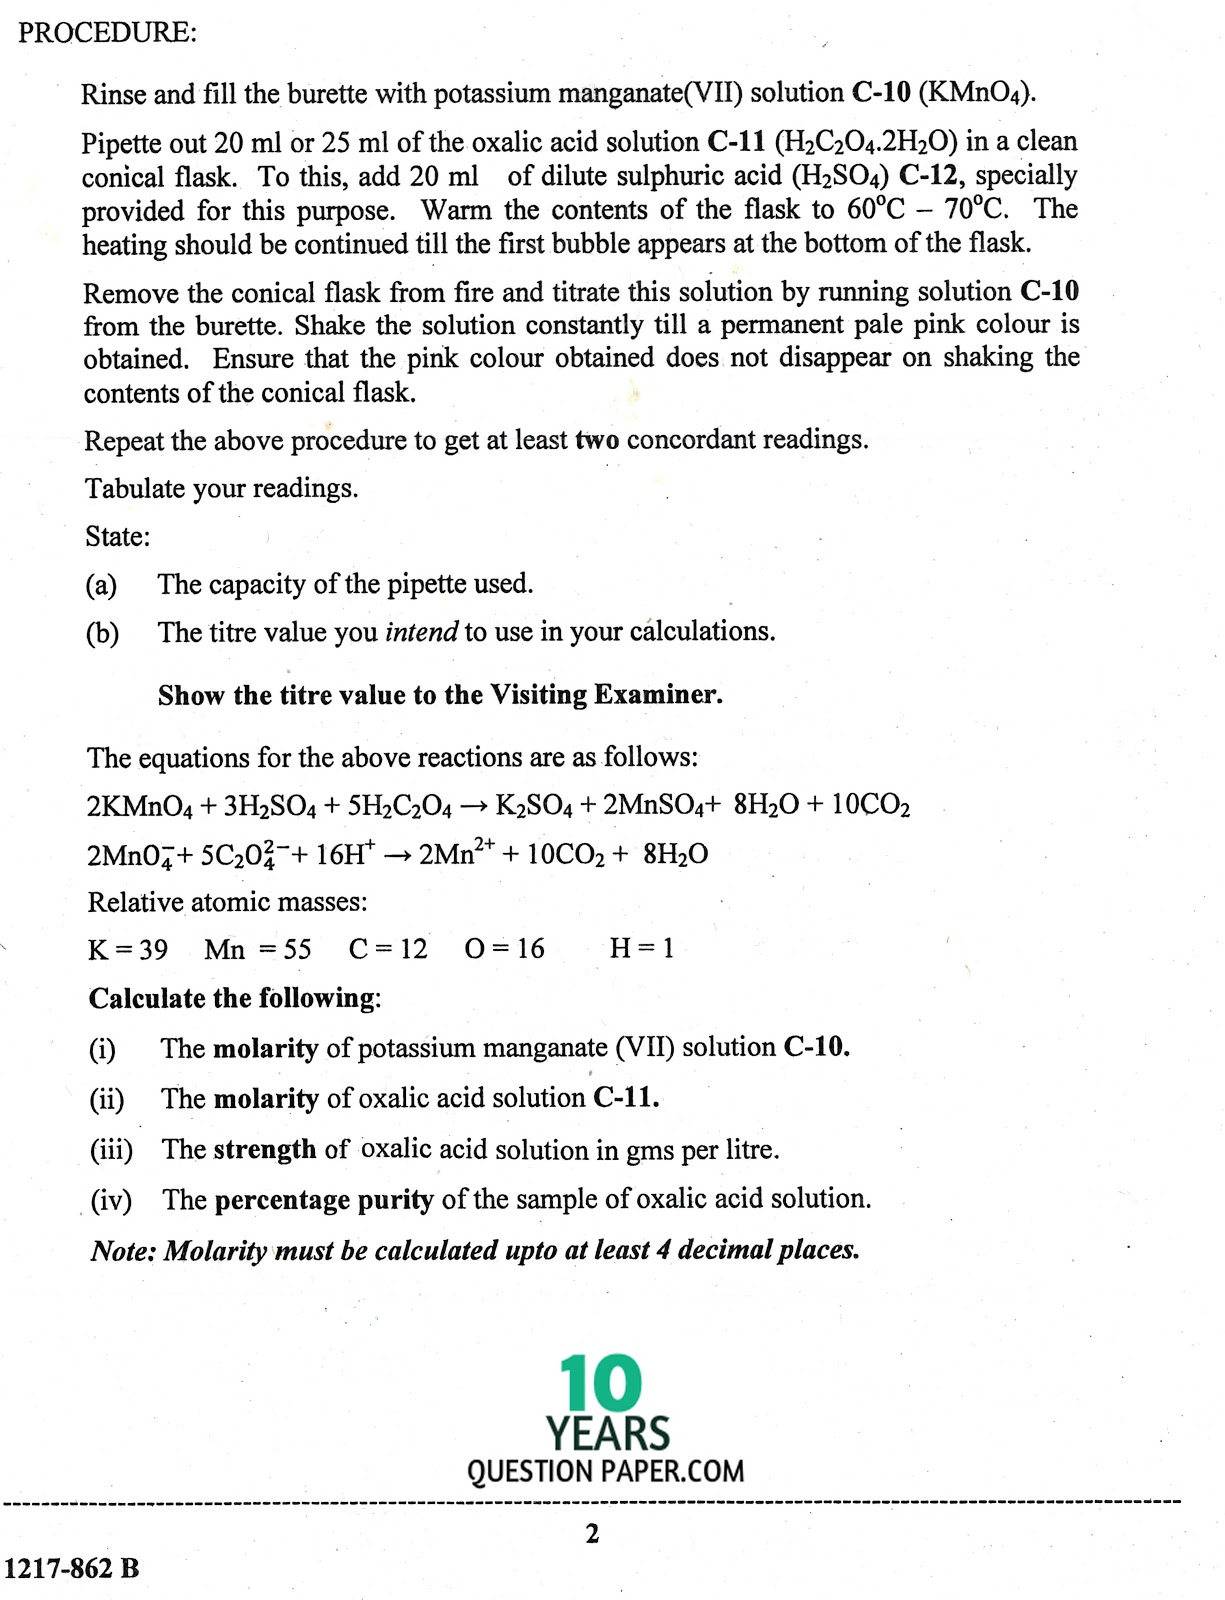 ISC Class 12 Chemistry Practical 2017 Question Paper